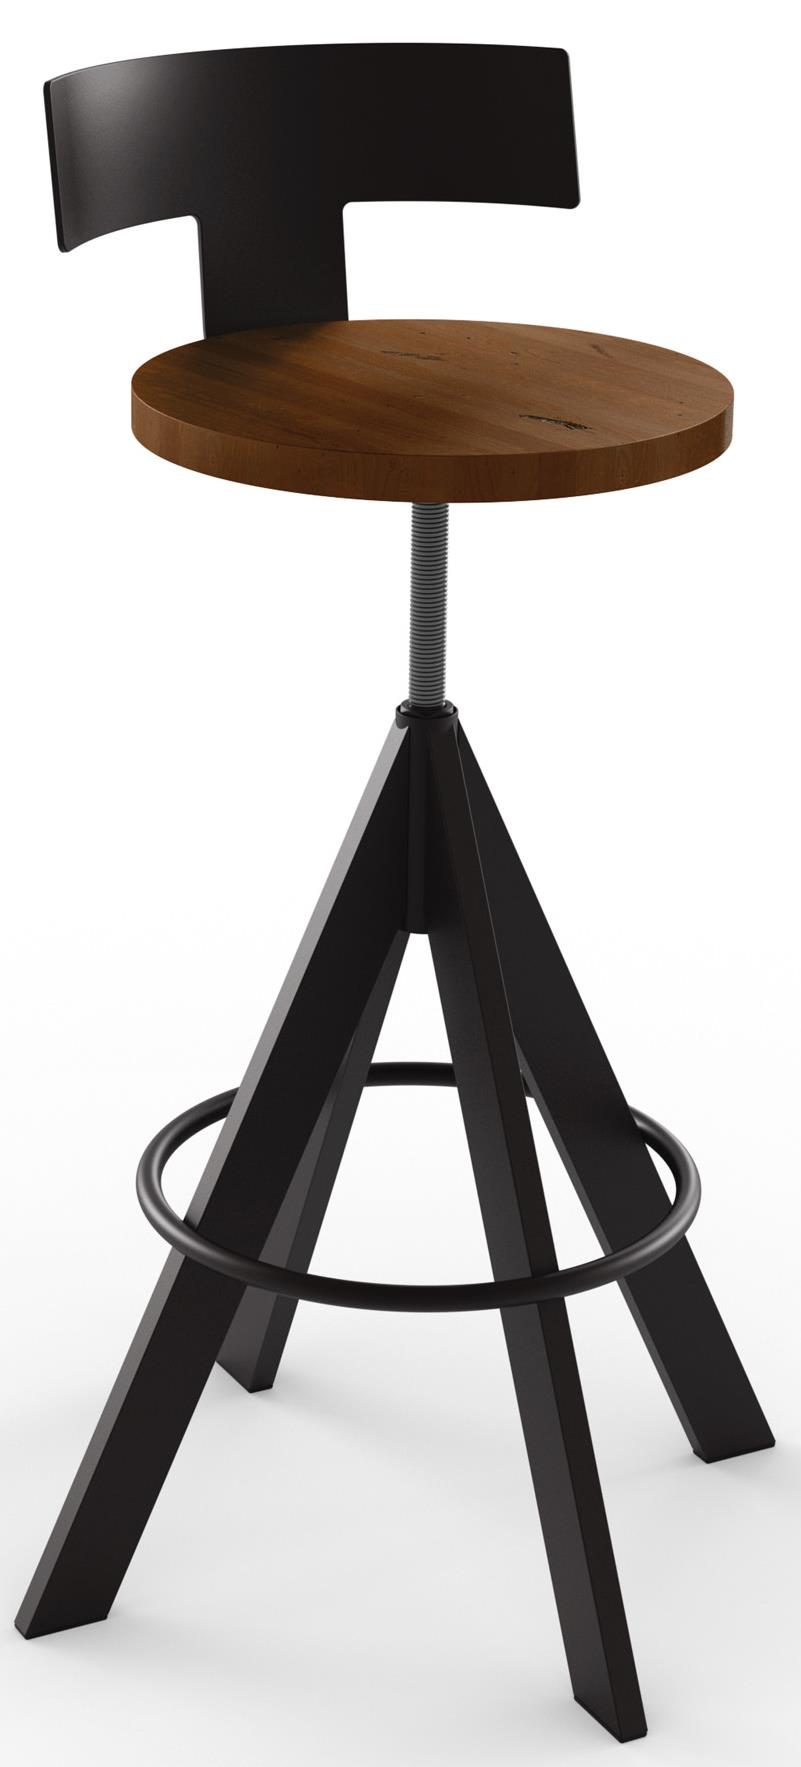 Amisco Industrial Uplift Adjustable Height Stool With Wood